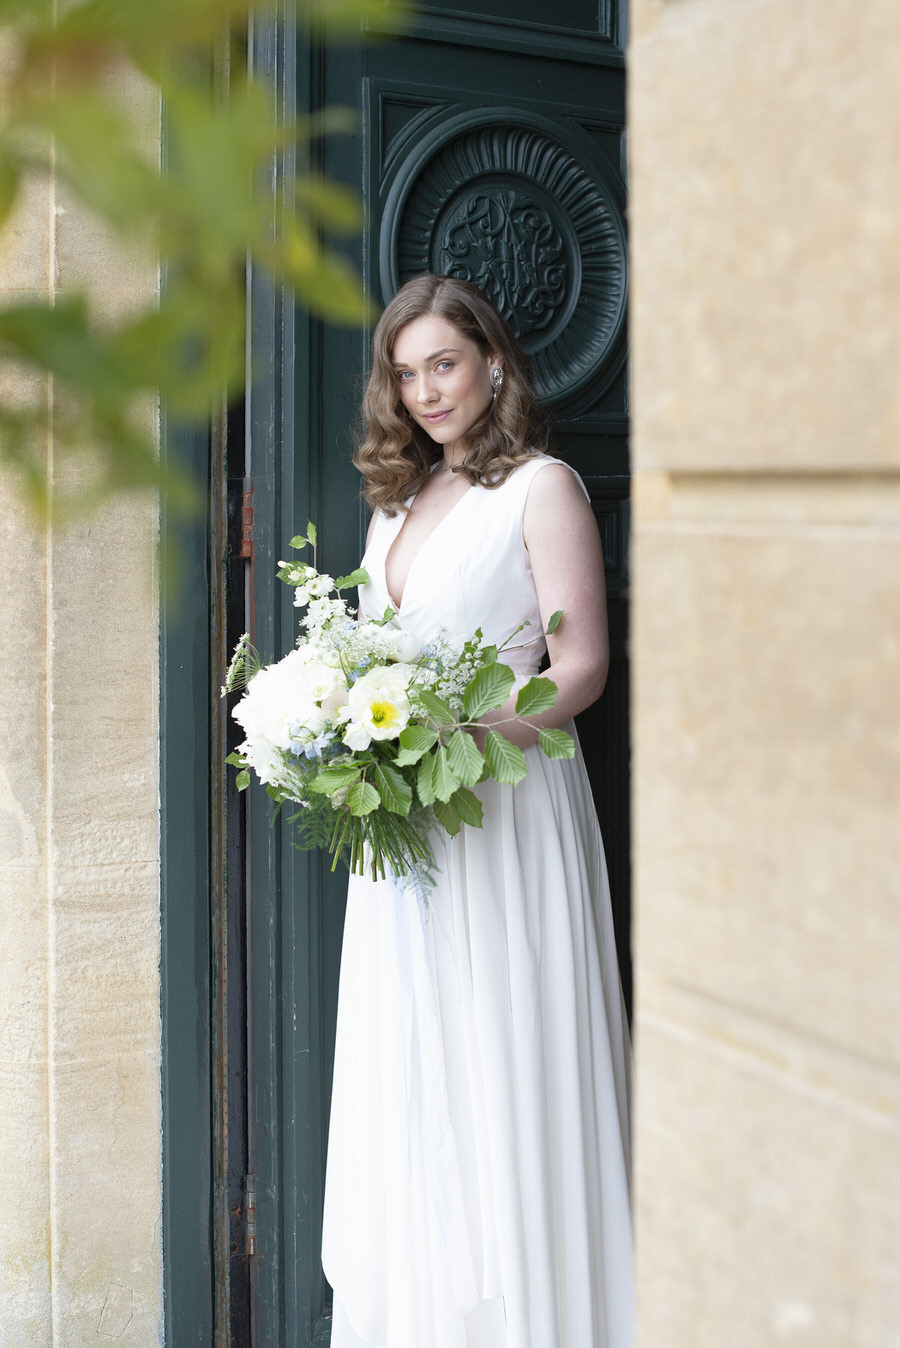 Pynes House wedding styling ideas with Ailsa Munro, Sarah Shuttle and Lottie Ettling PHotography (37)